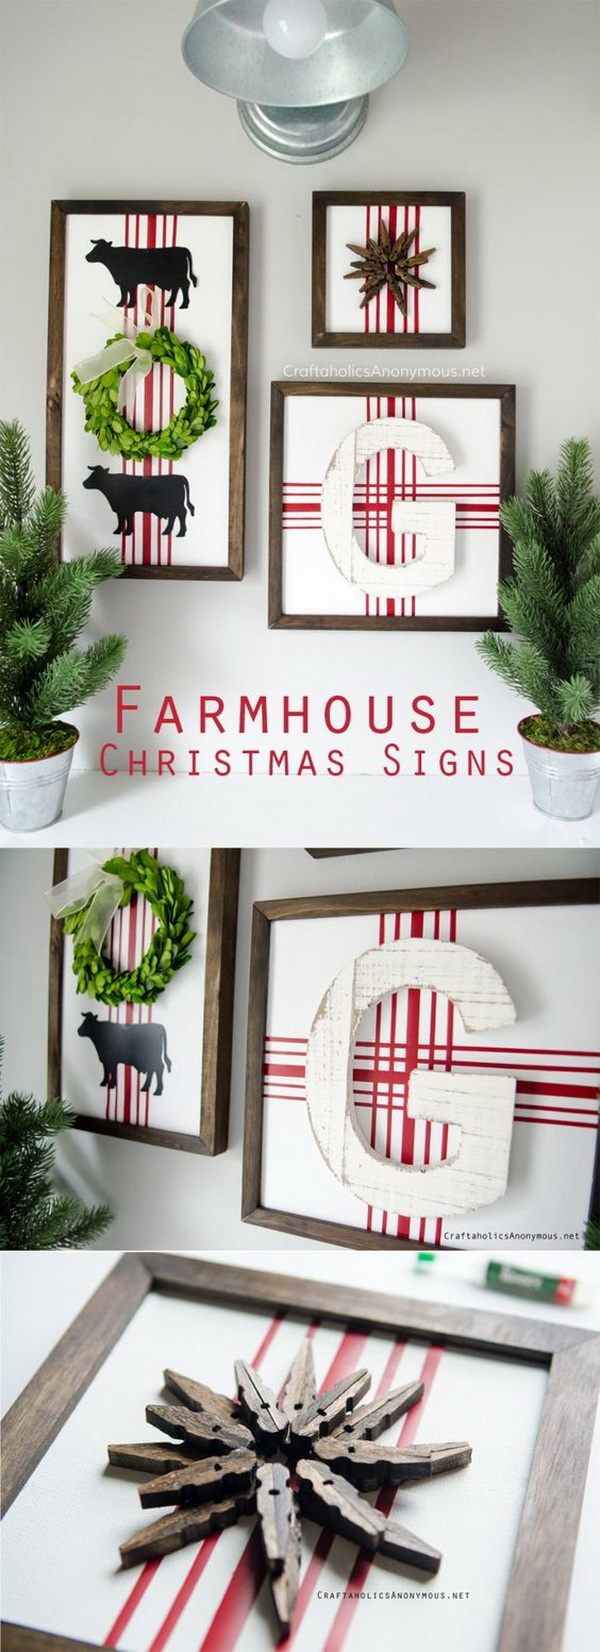 DIY Farmhouse Christmas Signs. Farmhouse trend is going strong for this Christmas season decoration! It is not expensive to achieve. Grab some supplies around your home or the dollar store and you can whip up the cutest set of Farmhouse Christmas Signs for your home in no time.